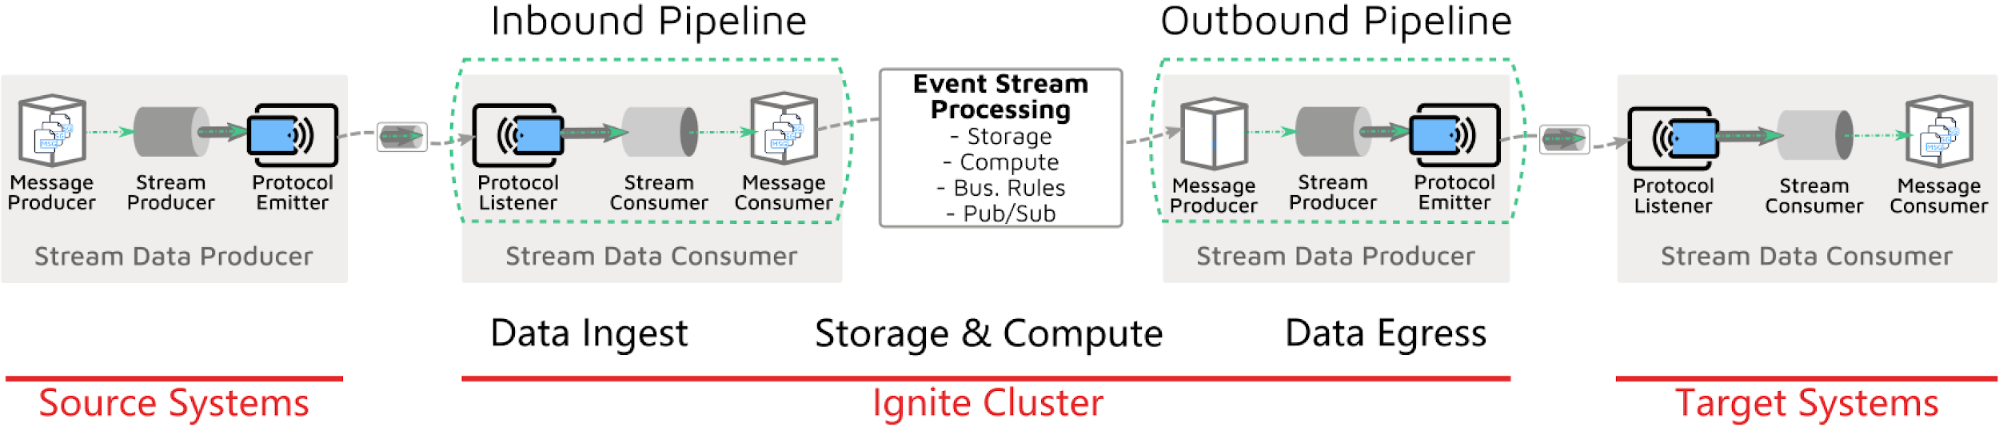 Event Stream Processing with Apache Ignite - Image 5